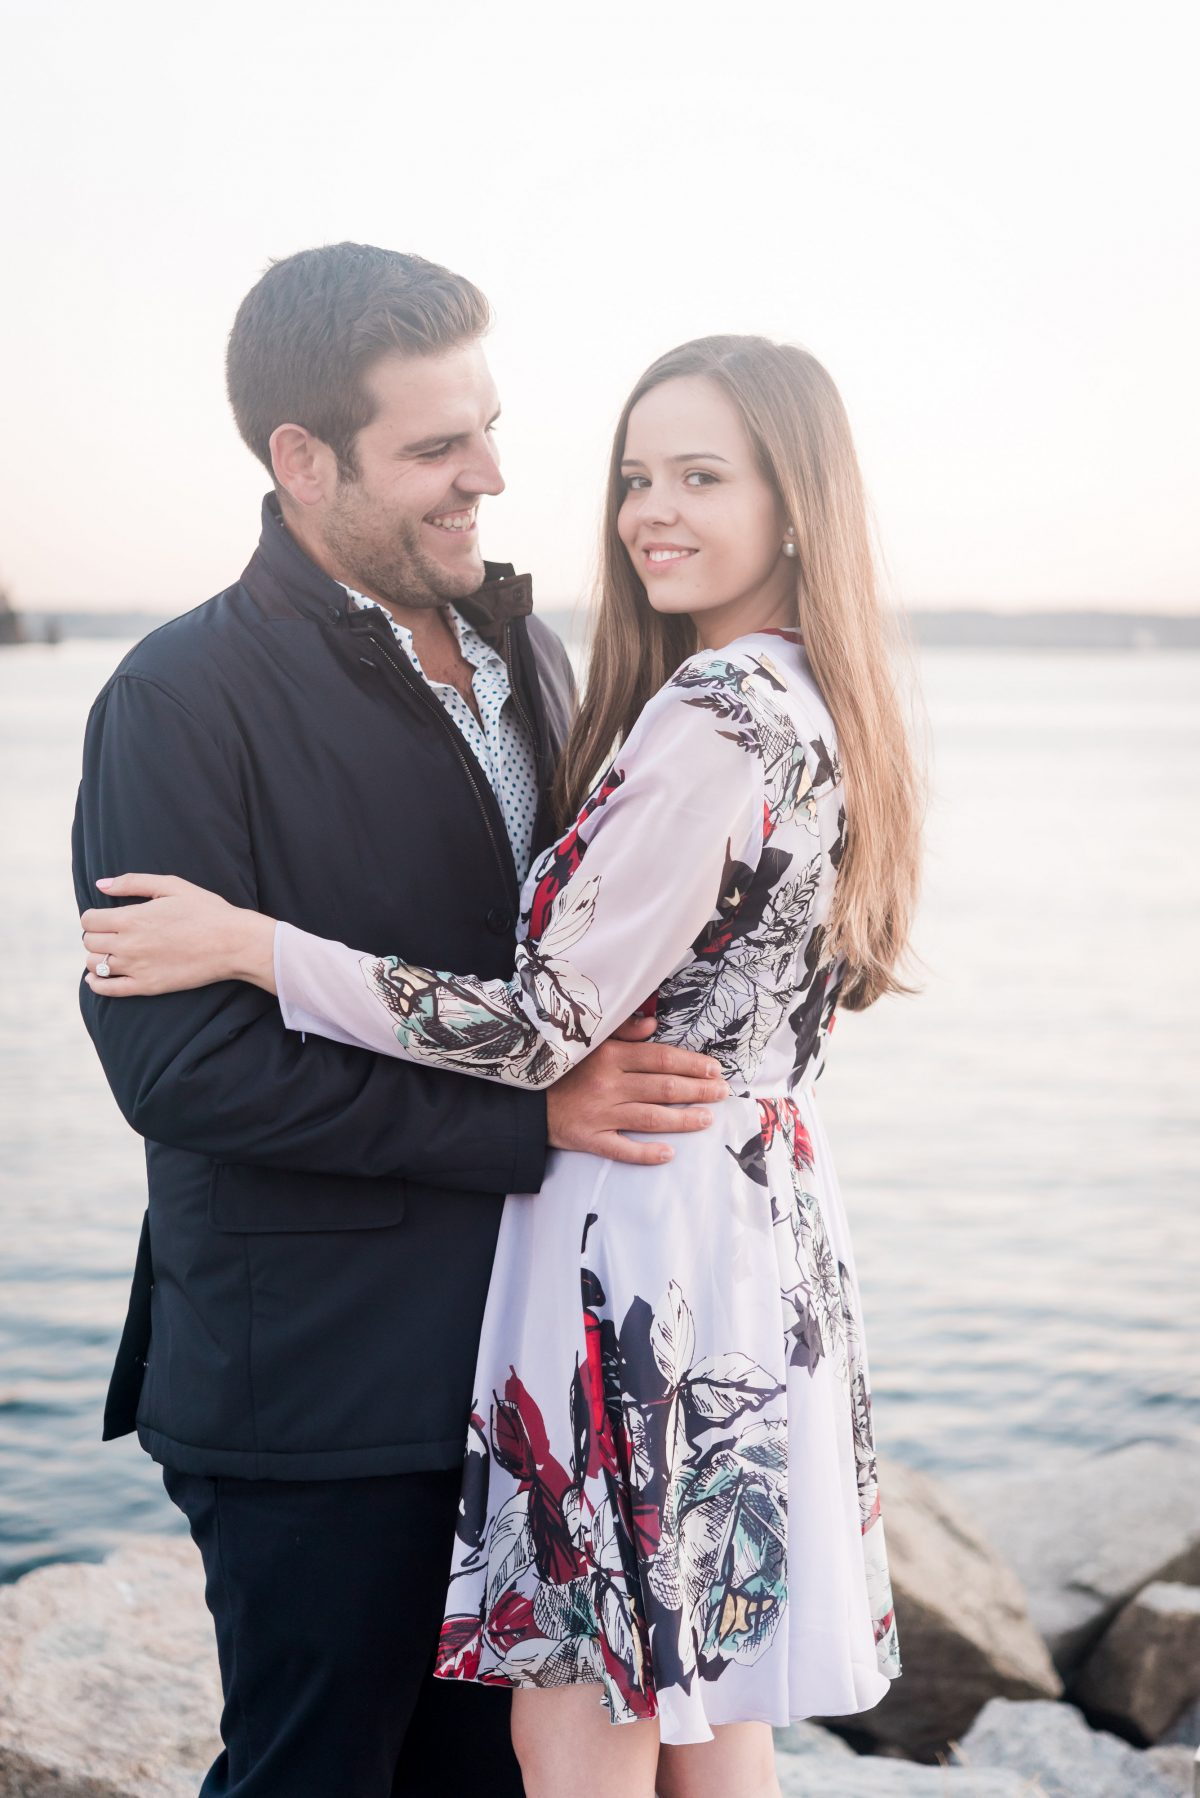 Estefi and Jose's Engagement in Ambleside Beach, Vancouver